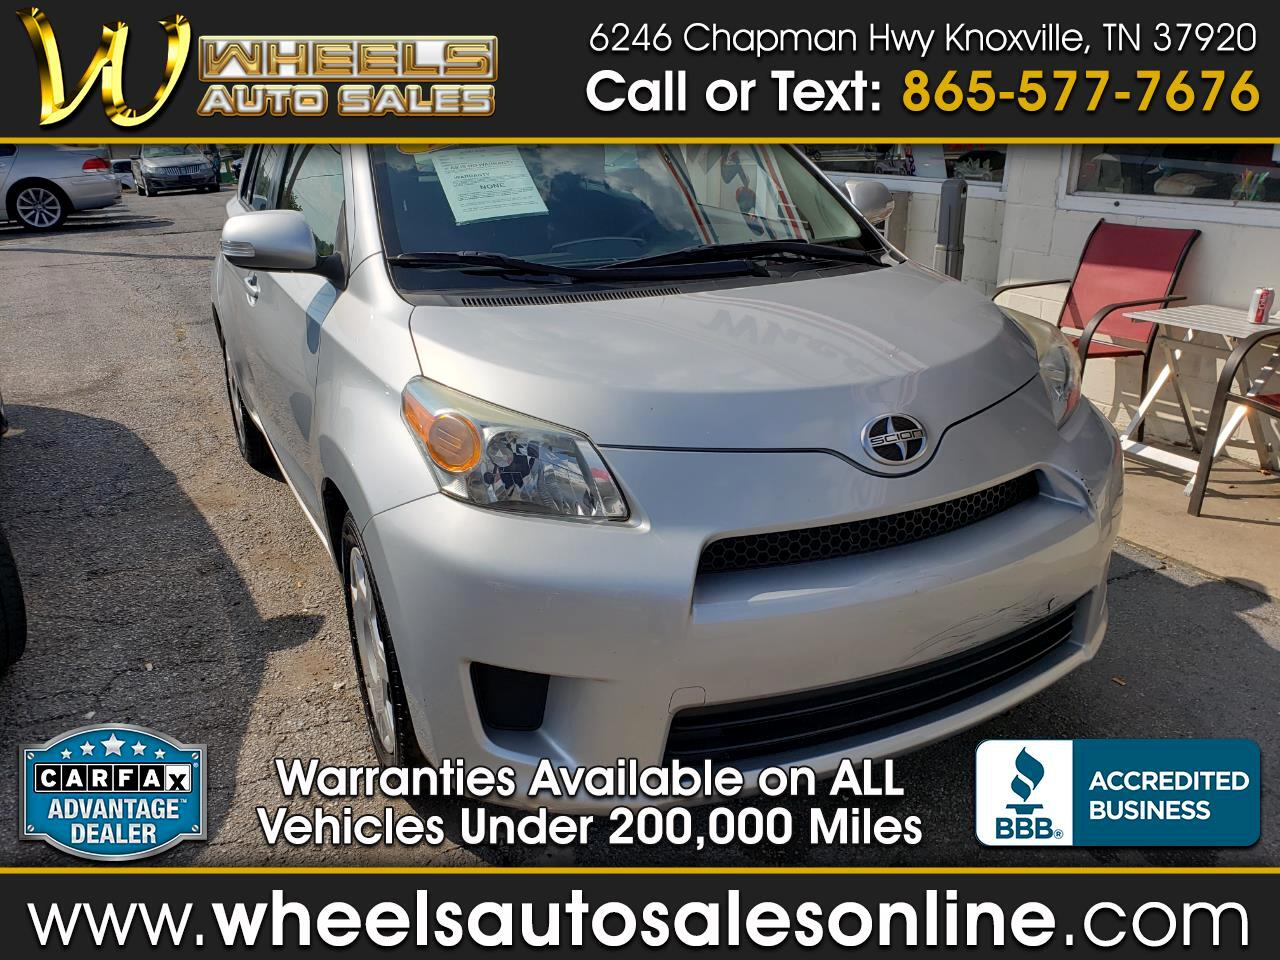 2012 Scion xD 5dr HB Auto (Natl)